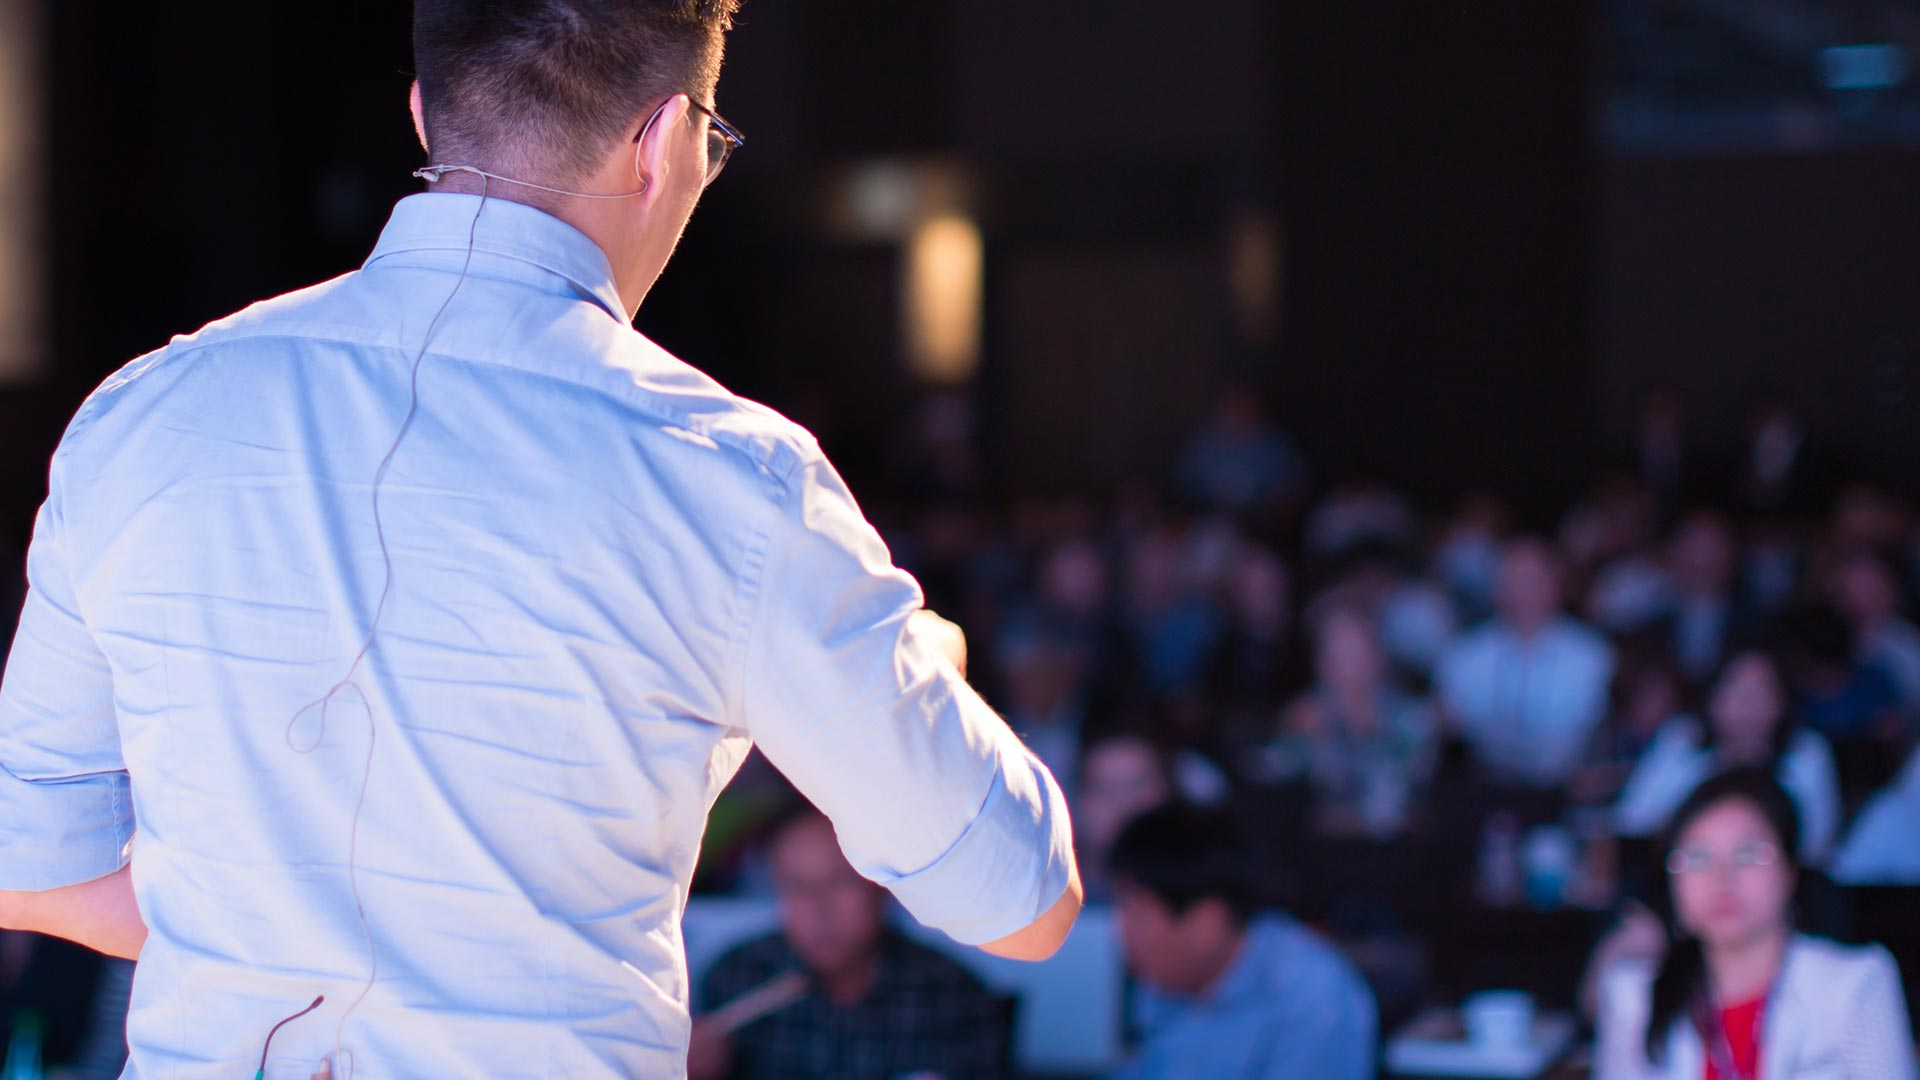 Get Paid To Speak $5,000 And Up At Conferences and Conventions